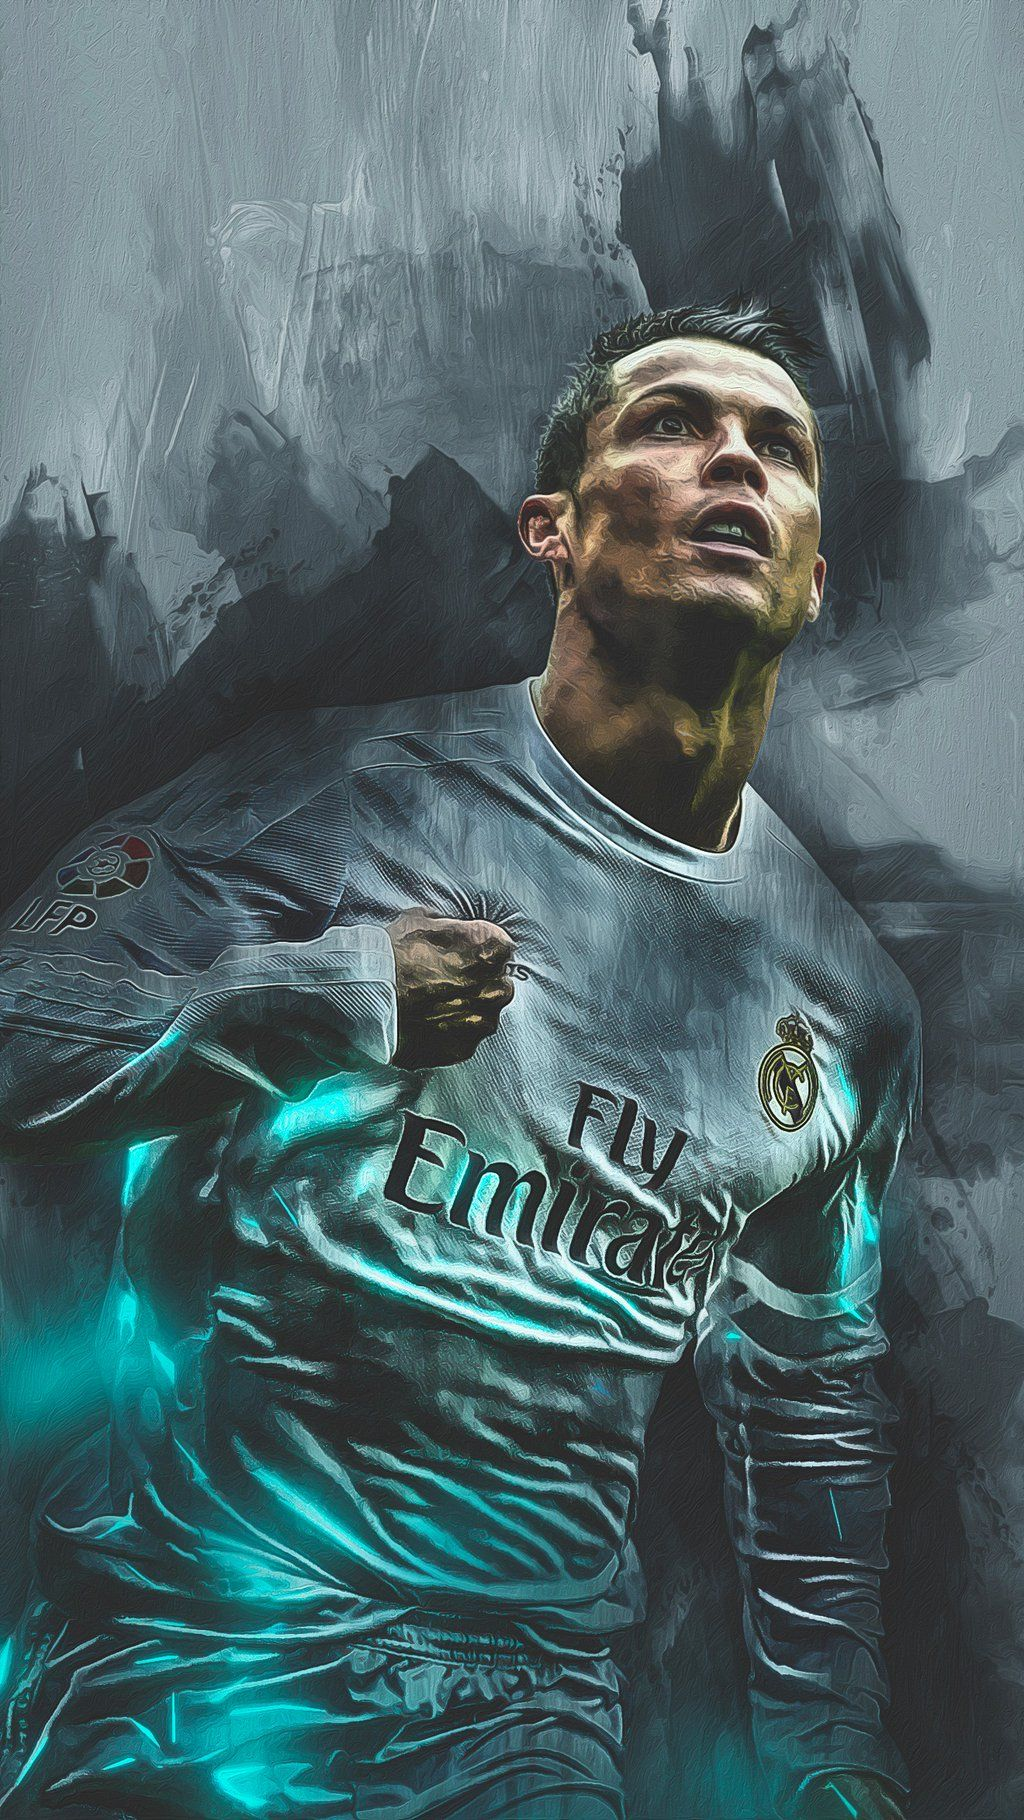 Cristiano ronaldo mobile wallpaper misc pinterest - C ronaldo wallpaper portugal ...